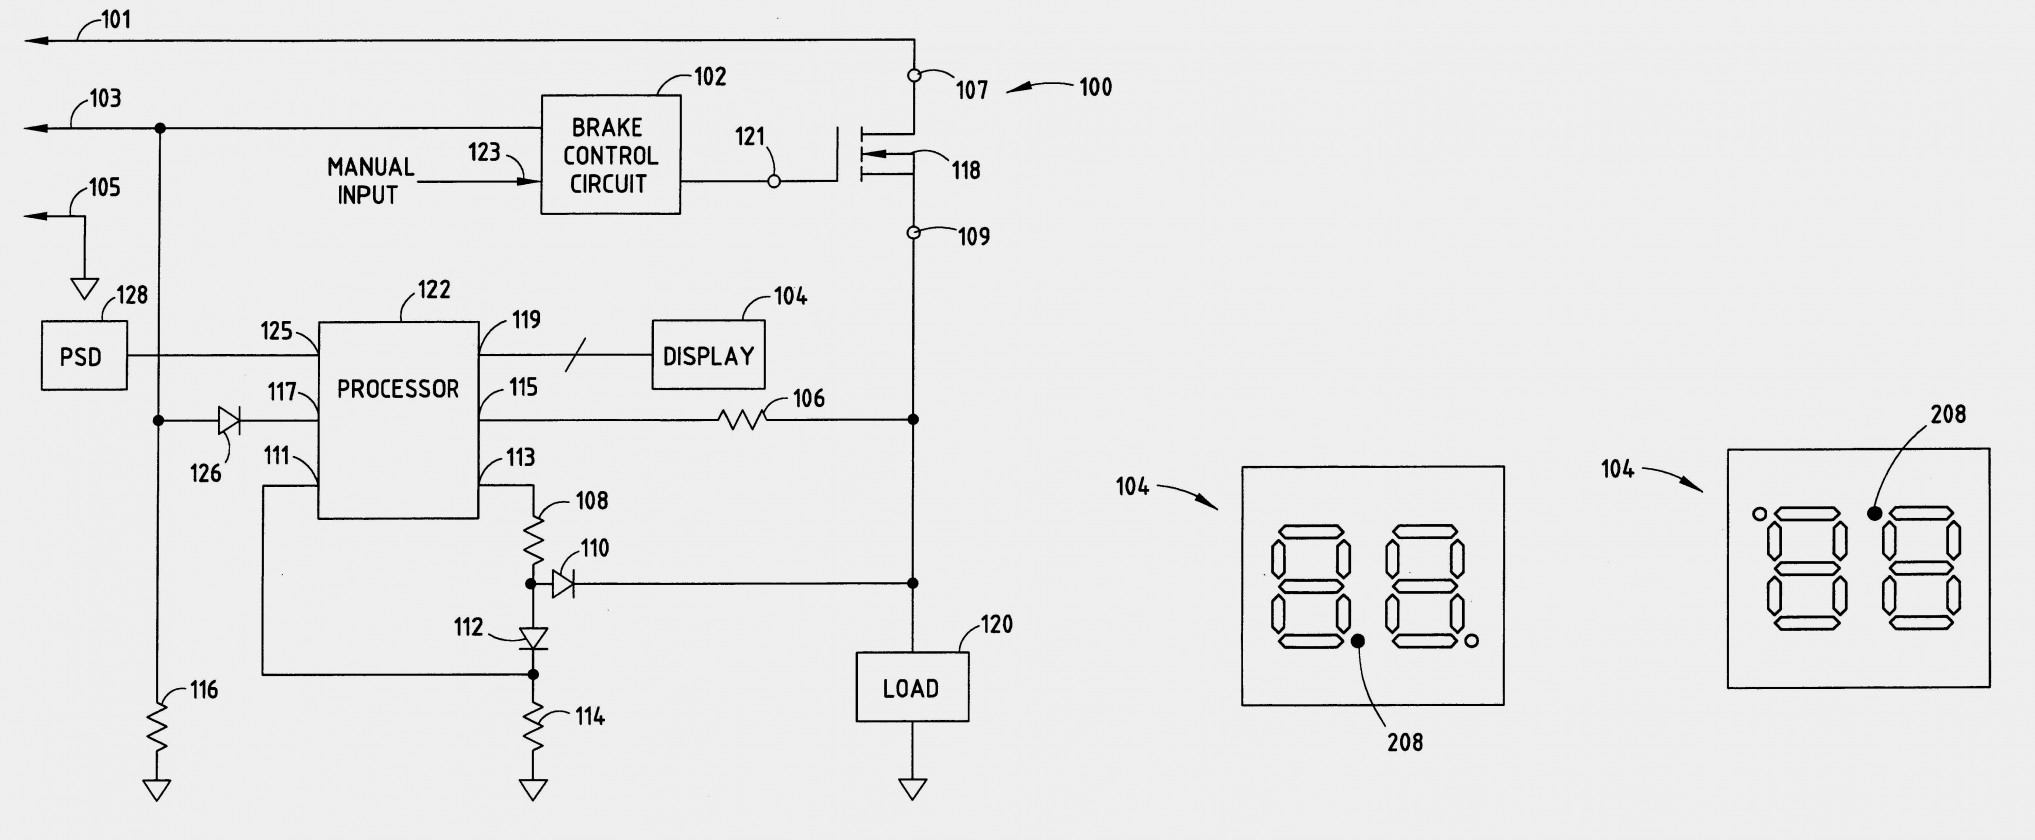 Images Voyager Trailer Brake Controller Wiring Diagram Electric - Voyager Trailer Brake Controller Wiring Diagram